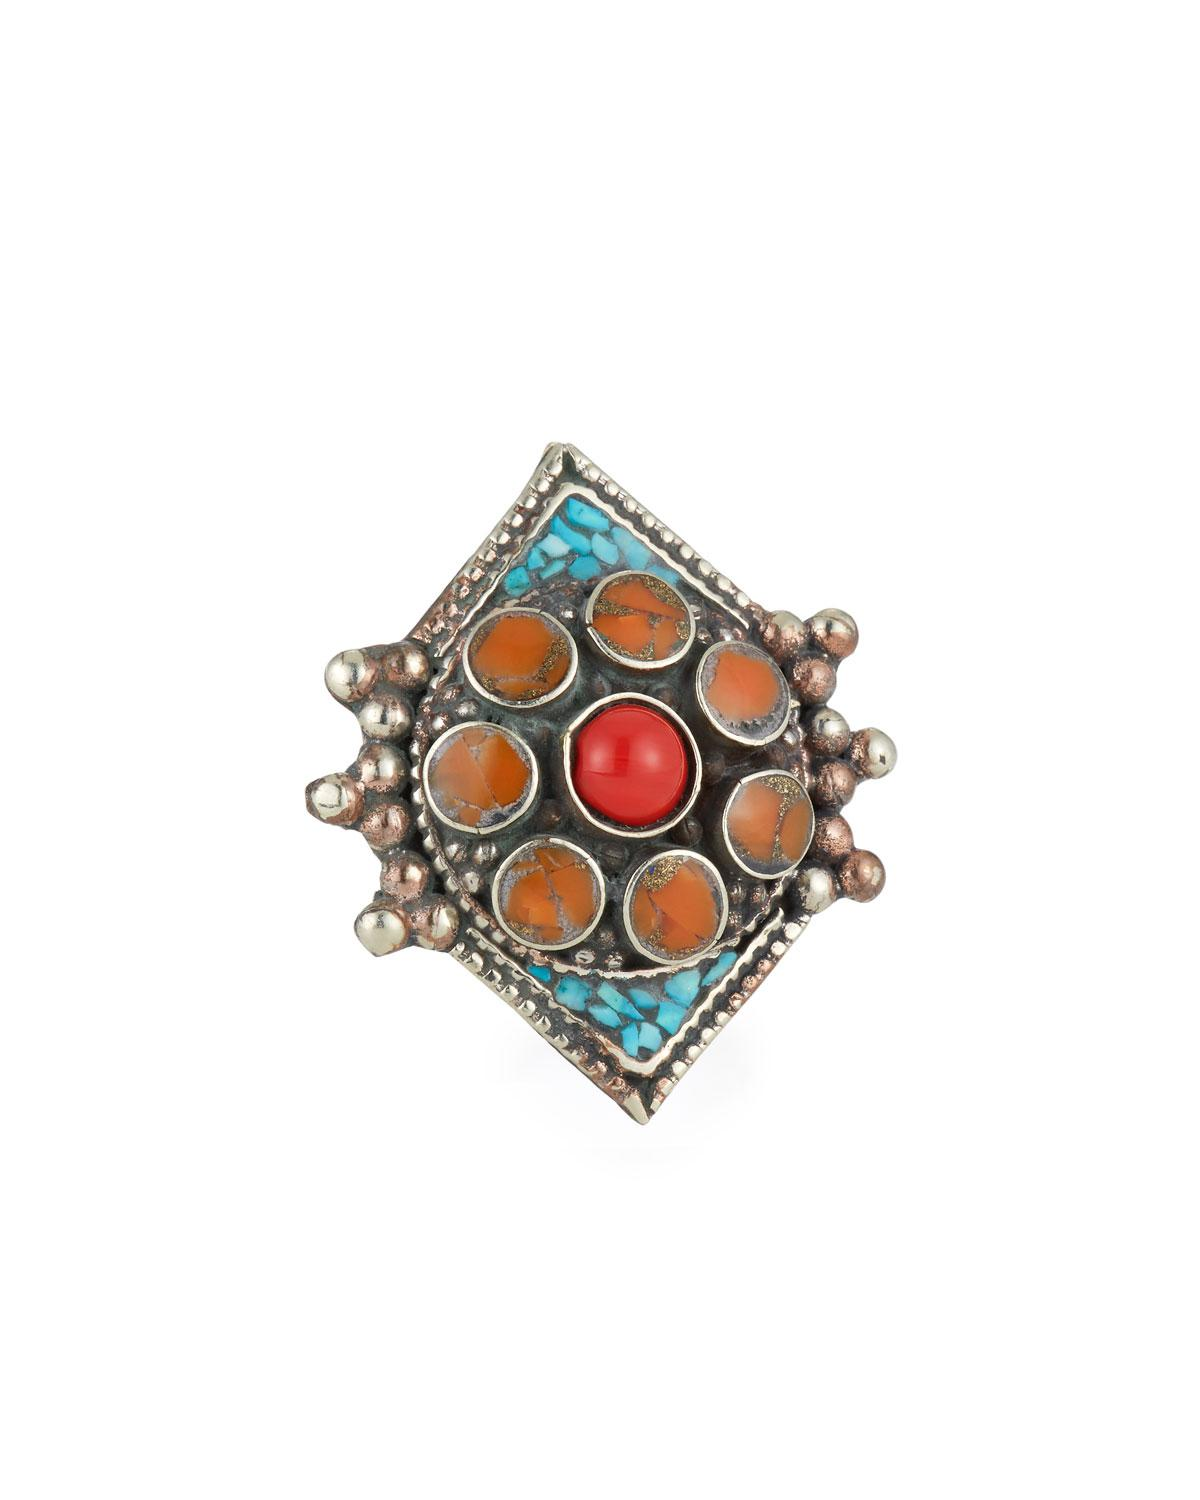 Devon Leigh Coral & Turquoise Adjustable Flower Ring 29WEJ